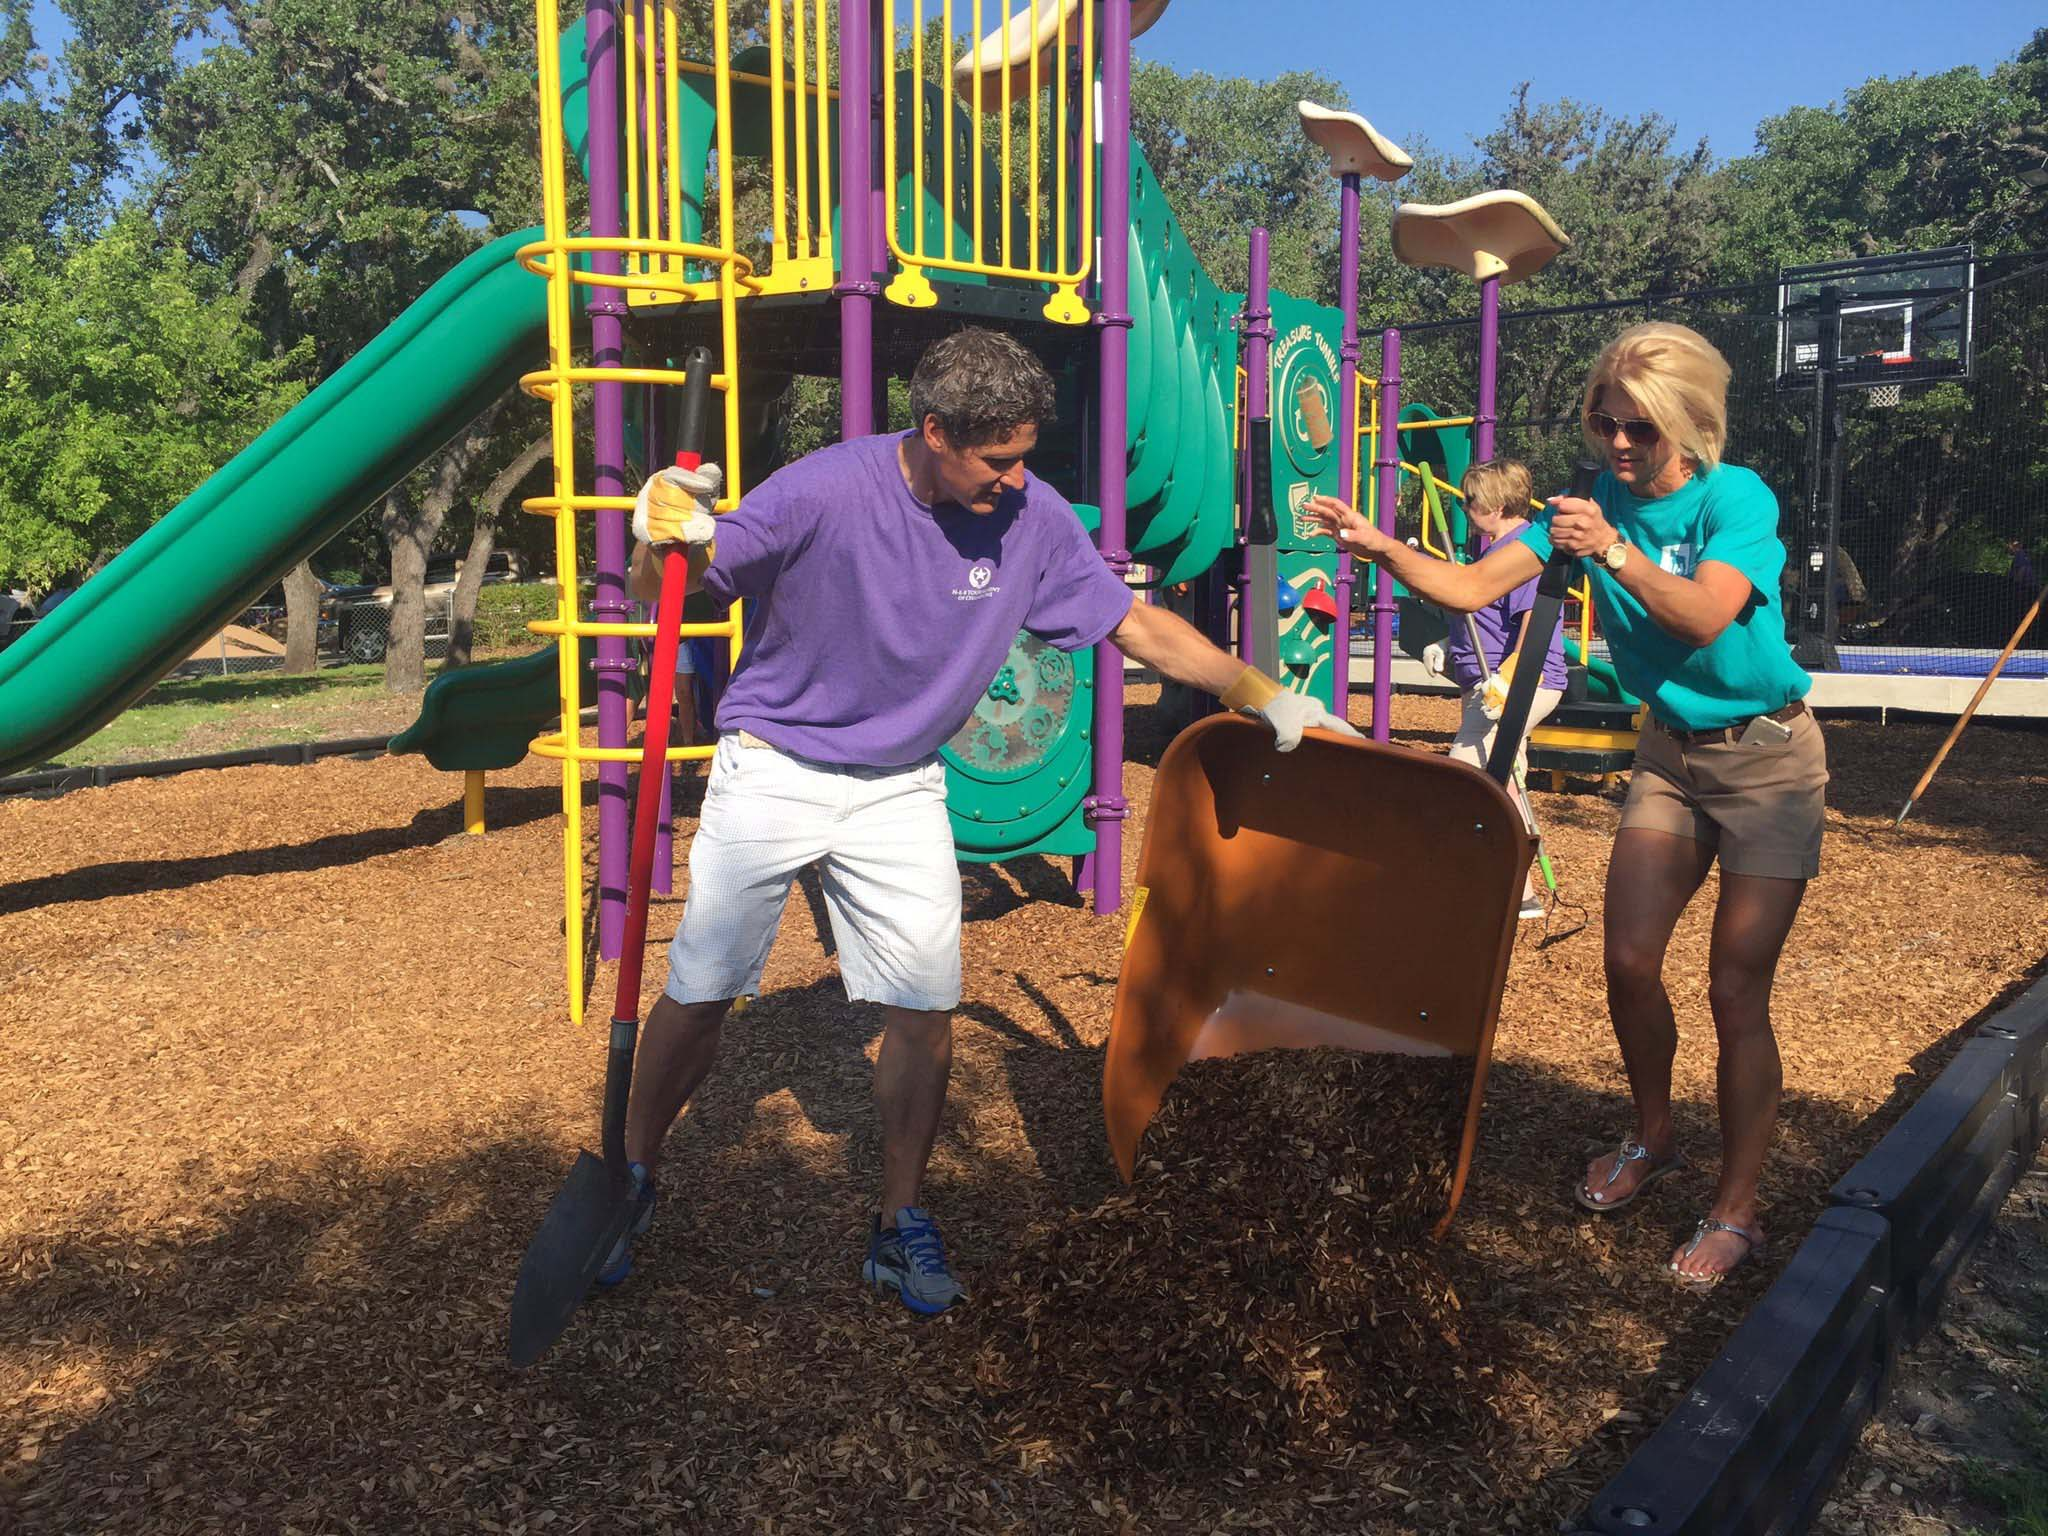 Volunteers execute campus improvement projects that include landscaping, painting, cleaning common areas and recreational space, and enhancing outdoor space at the Children's Shelter Residential Campus.